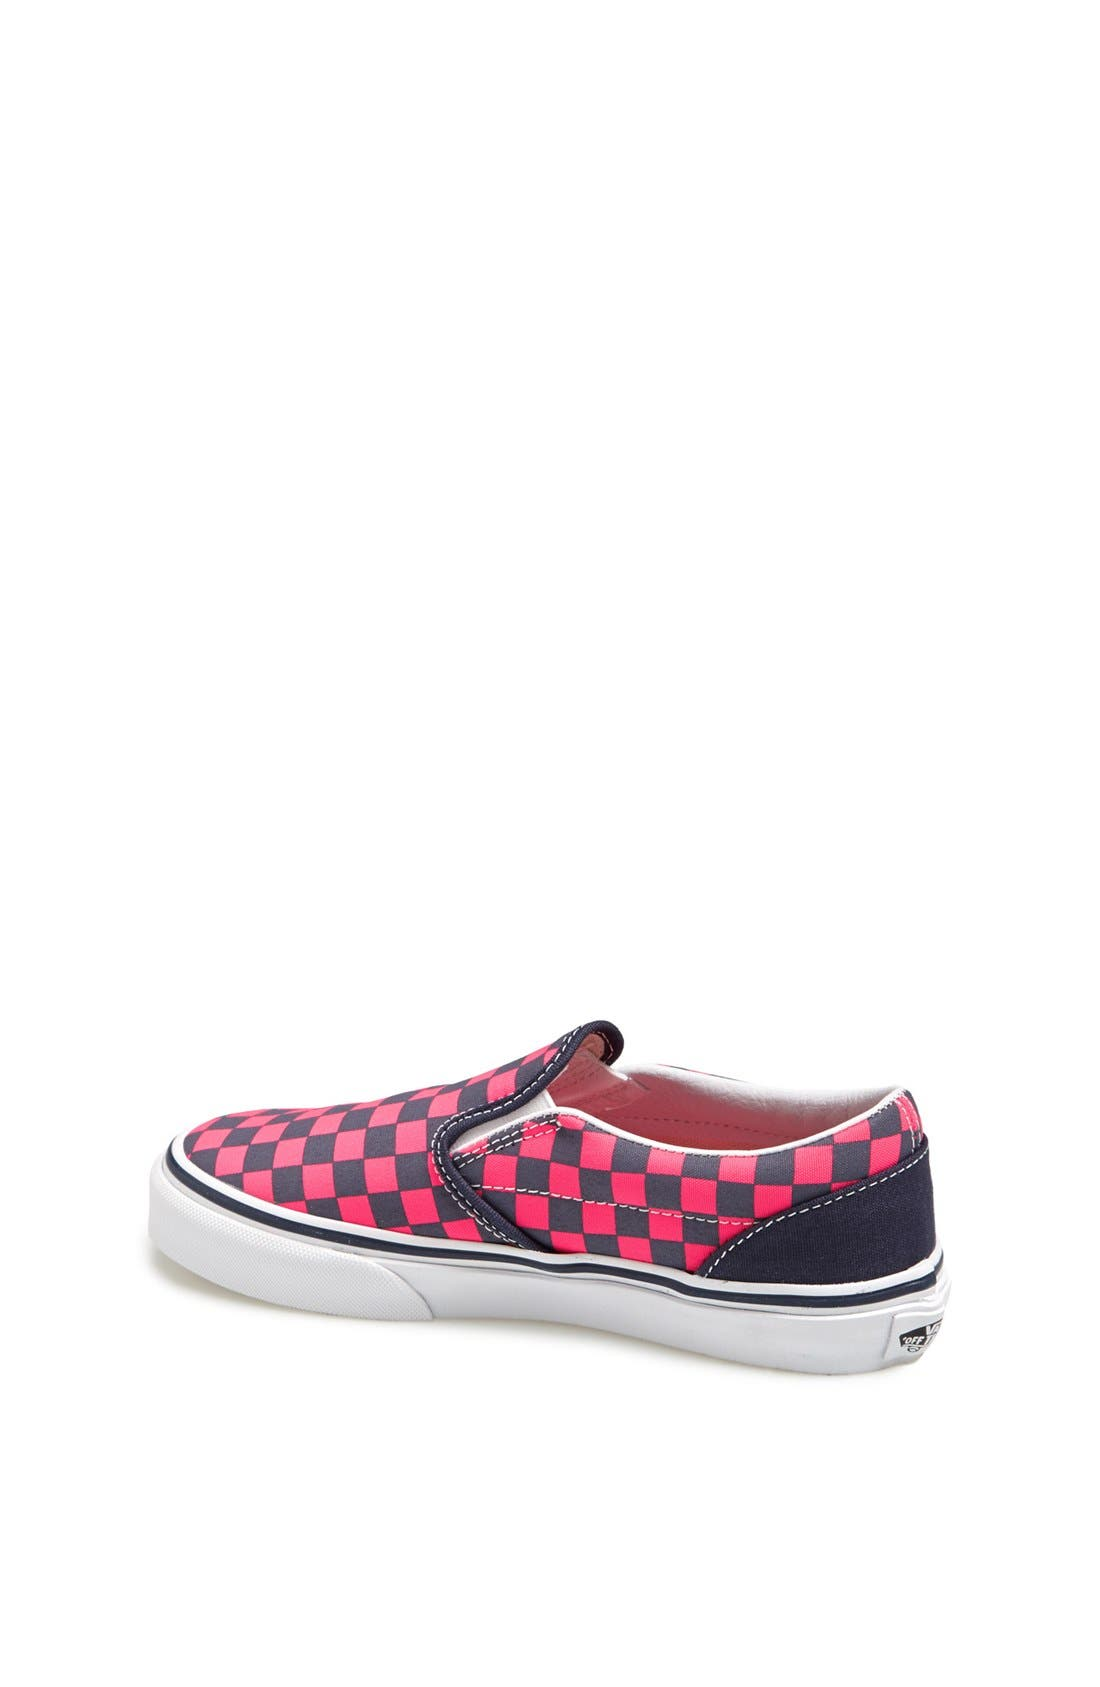 Alternate Image 2  - VANS CLASSIC SLIP ON CHECKERBOARD SNEAKER